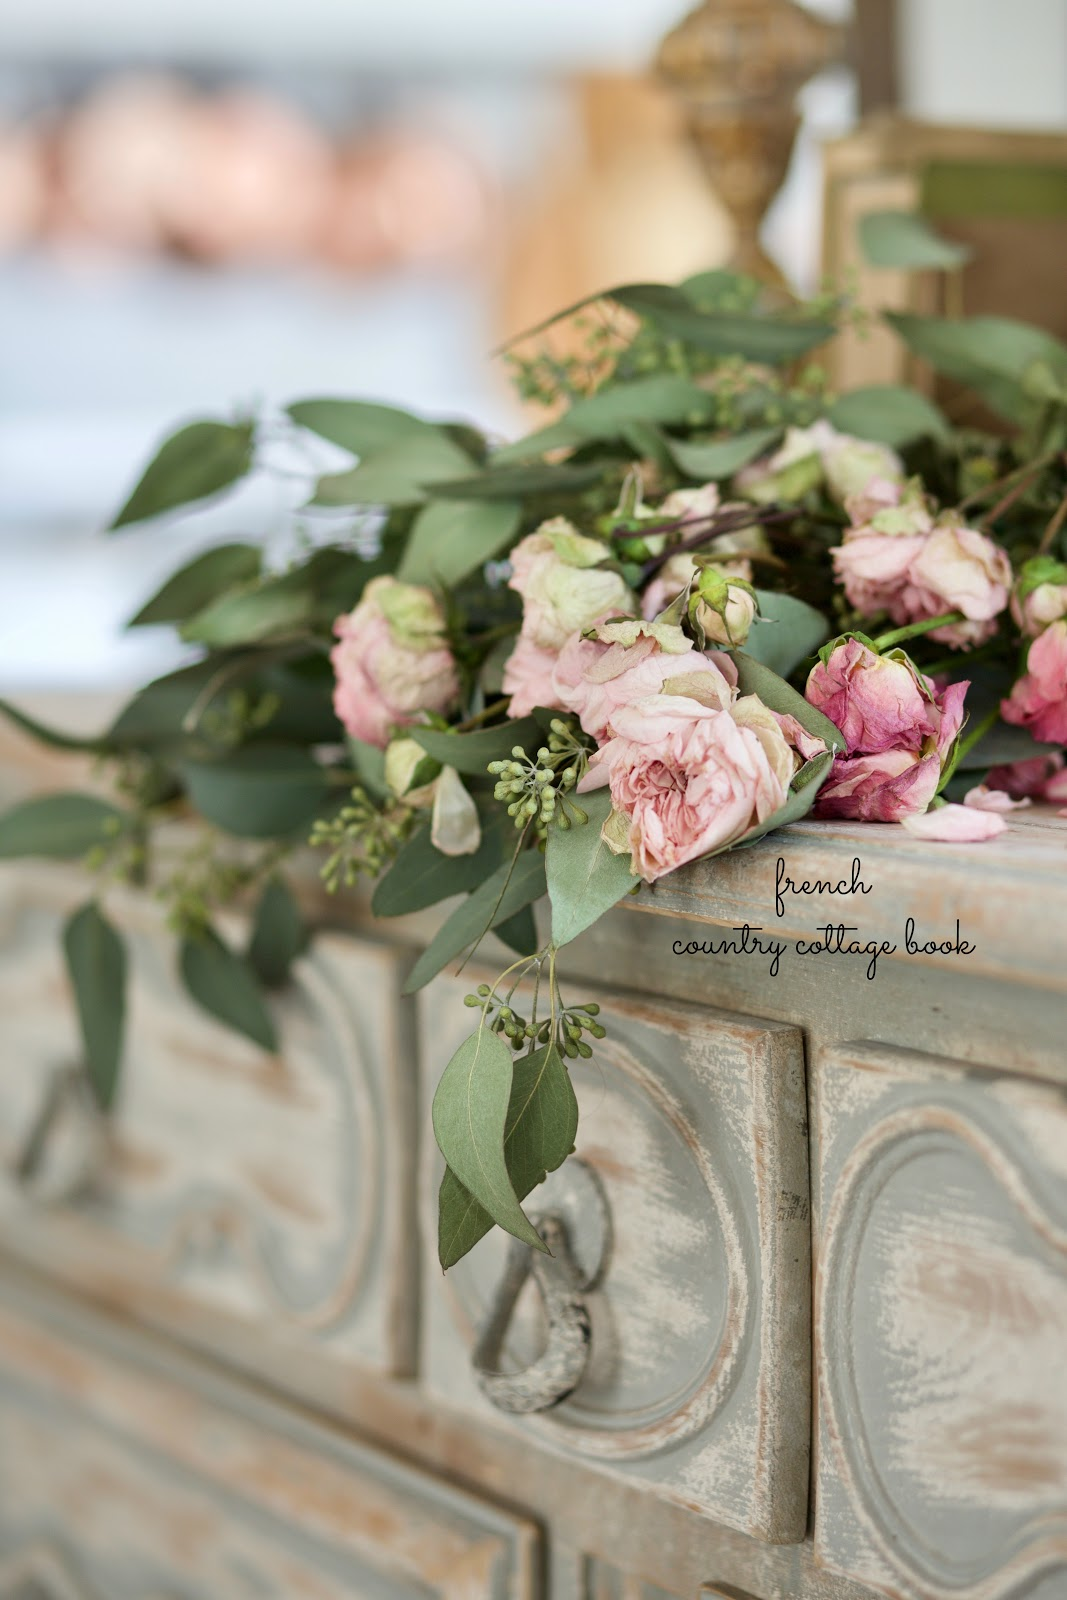 7 ways to use dried flowers in your decor